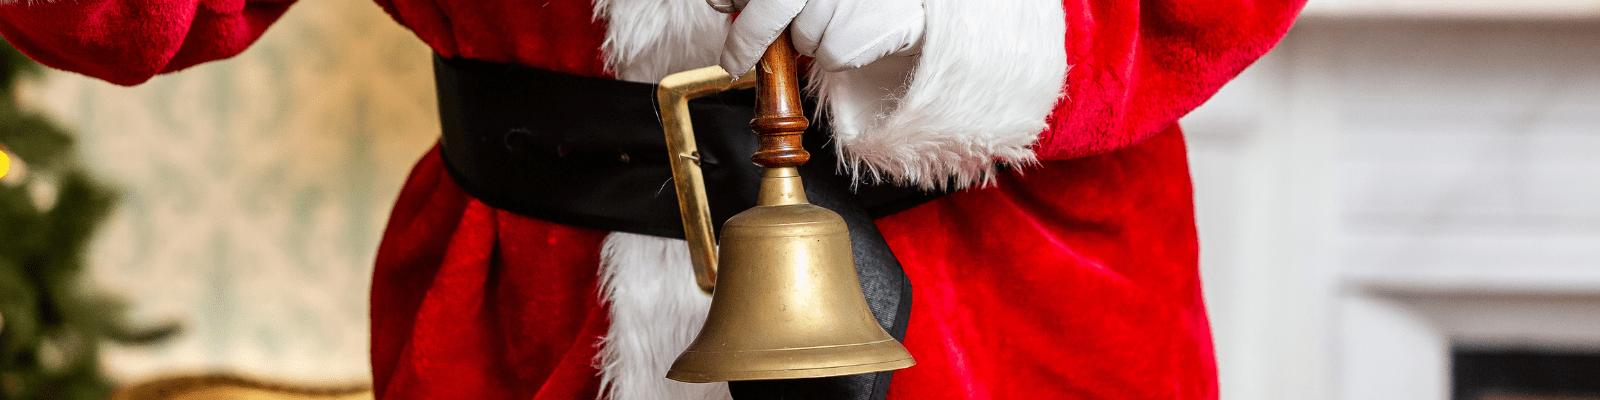 https://www.airfield.ie/wp-content/uploads/2020/09/Santa-Ringing-Bell-at-Airfield-Estate-min.png